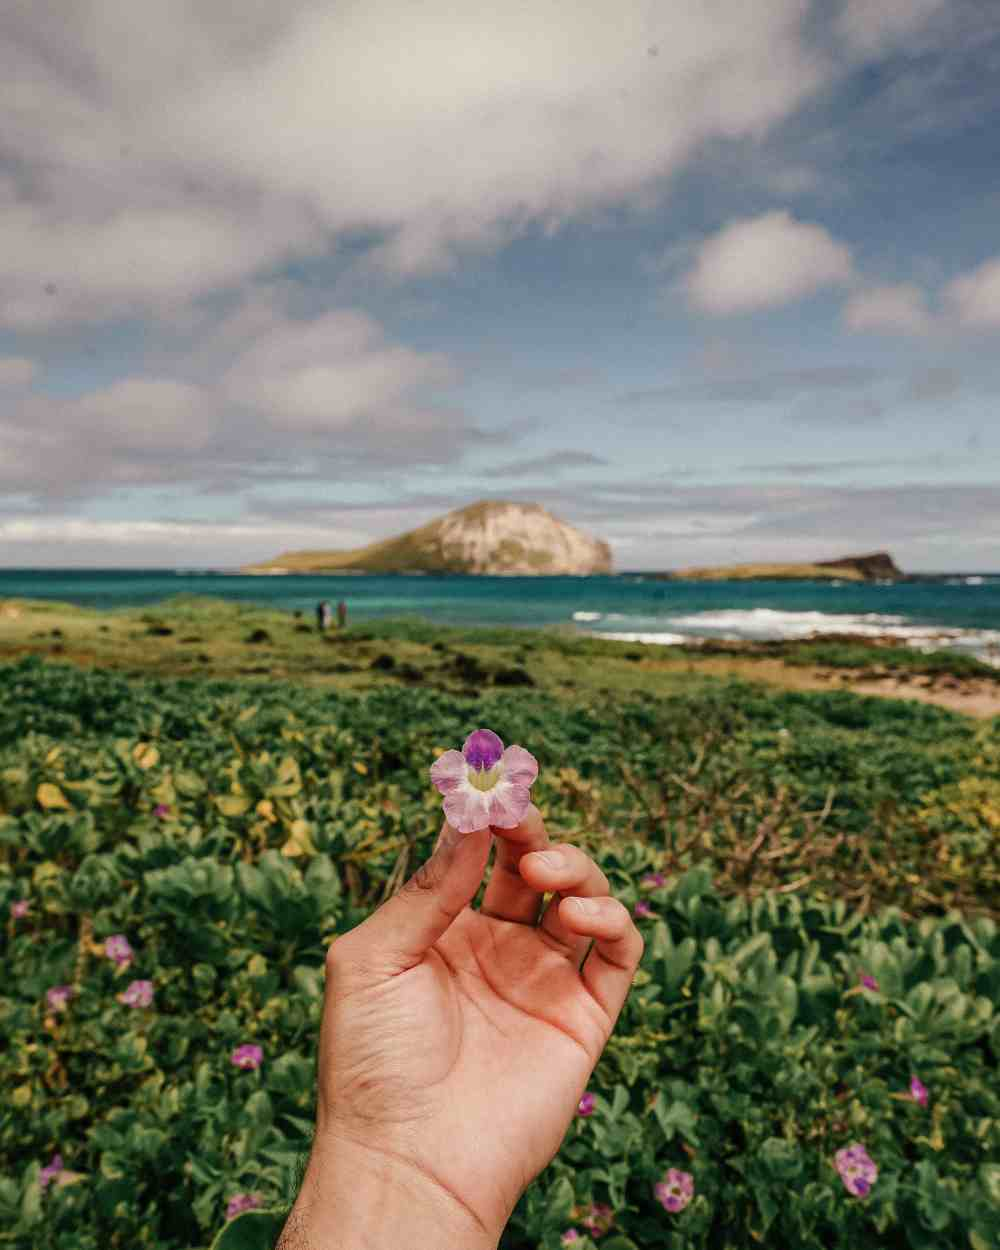 hand-holding-flower-in-hawaii-mountains-ocean-beautiful